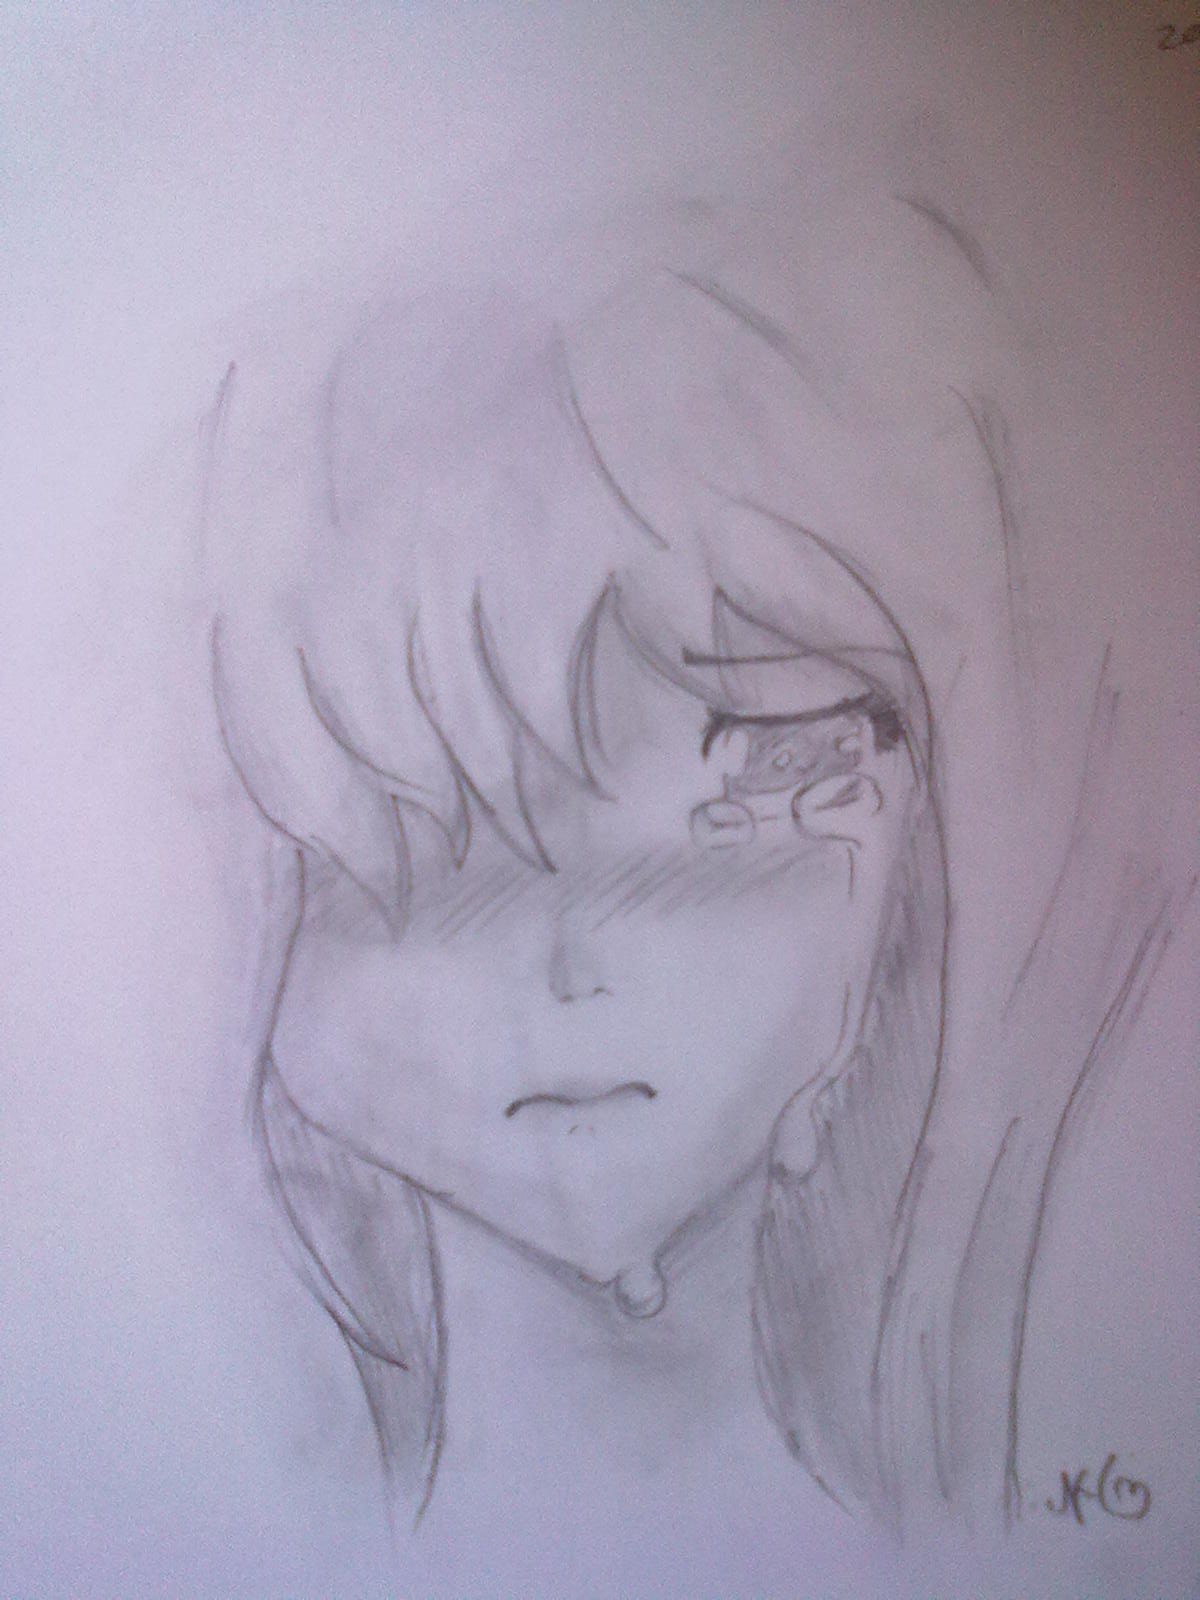 Crying anime girl. by AJCutiePie on DeviantArt